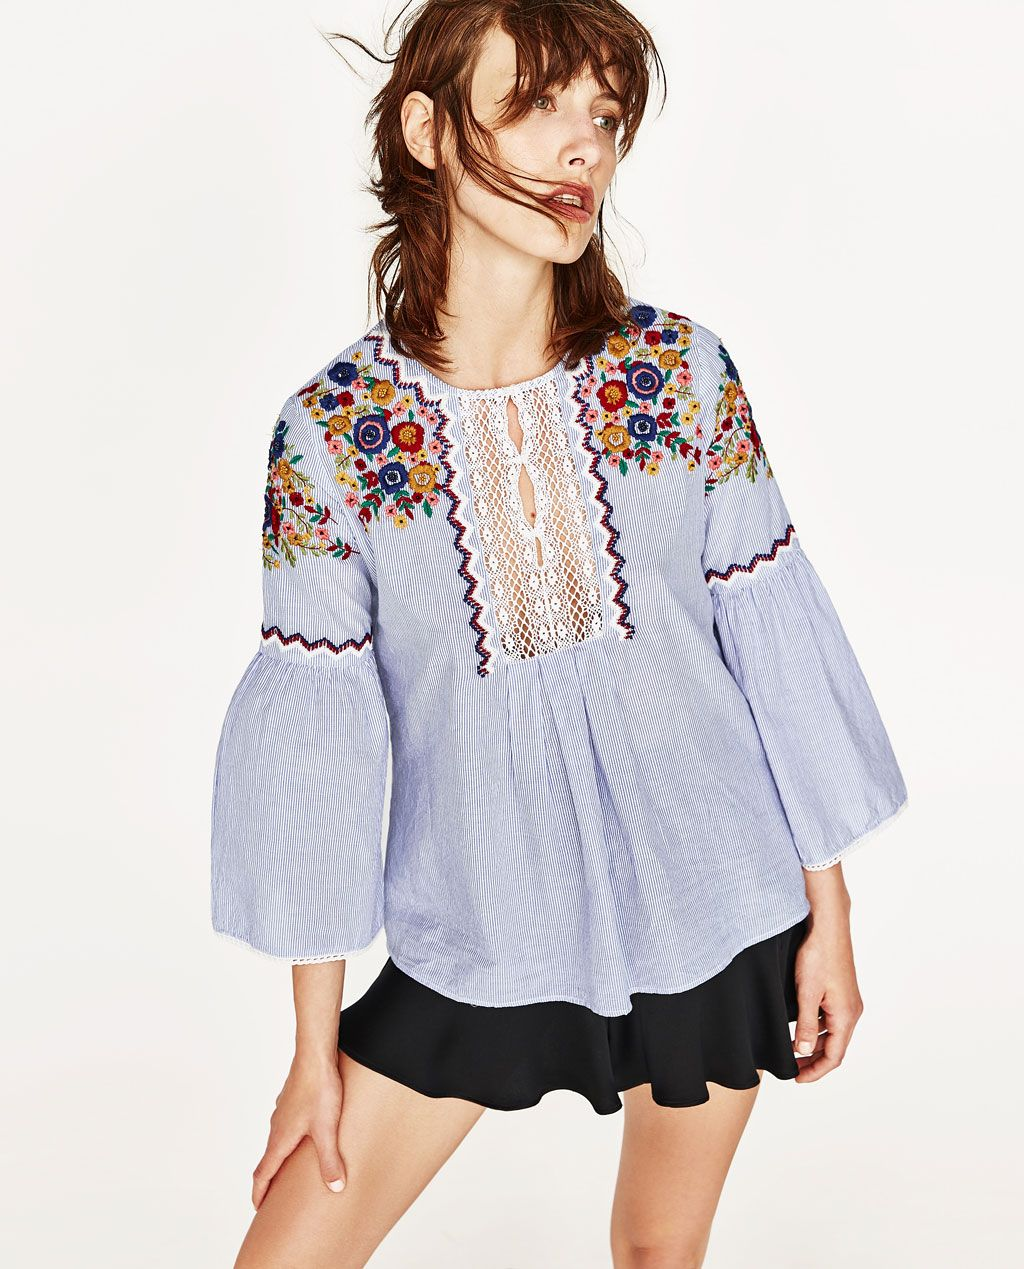 c461137f36bd EMBROIDERED FLOUNCE SHIRT-TOPS-TRF | ZARA United States Woman Shirt, Retro  Floral